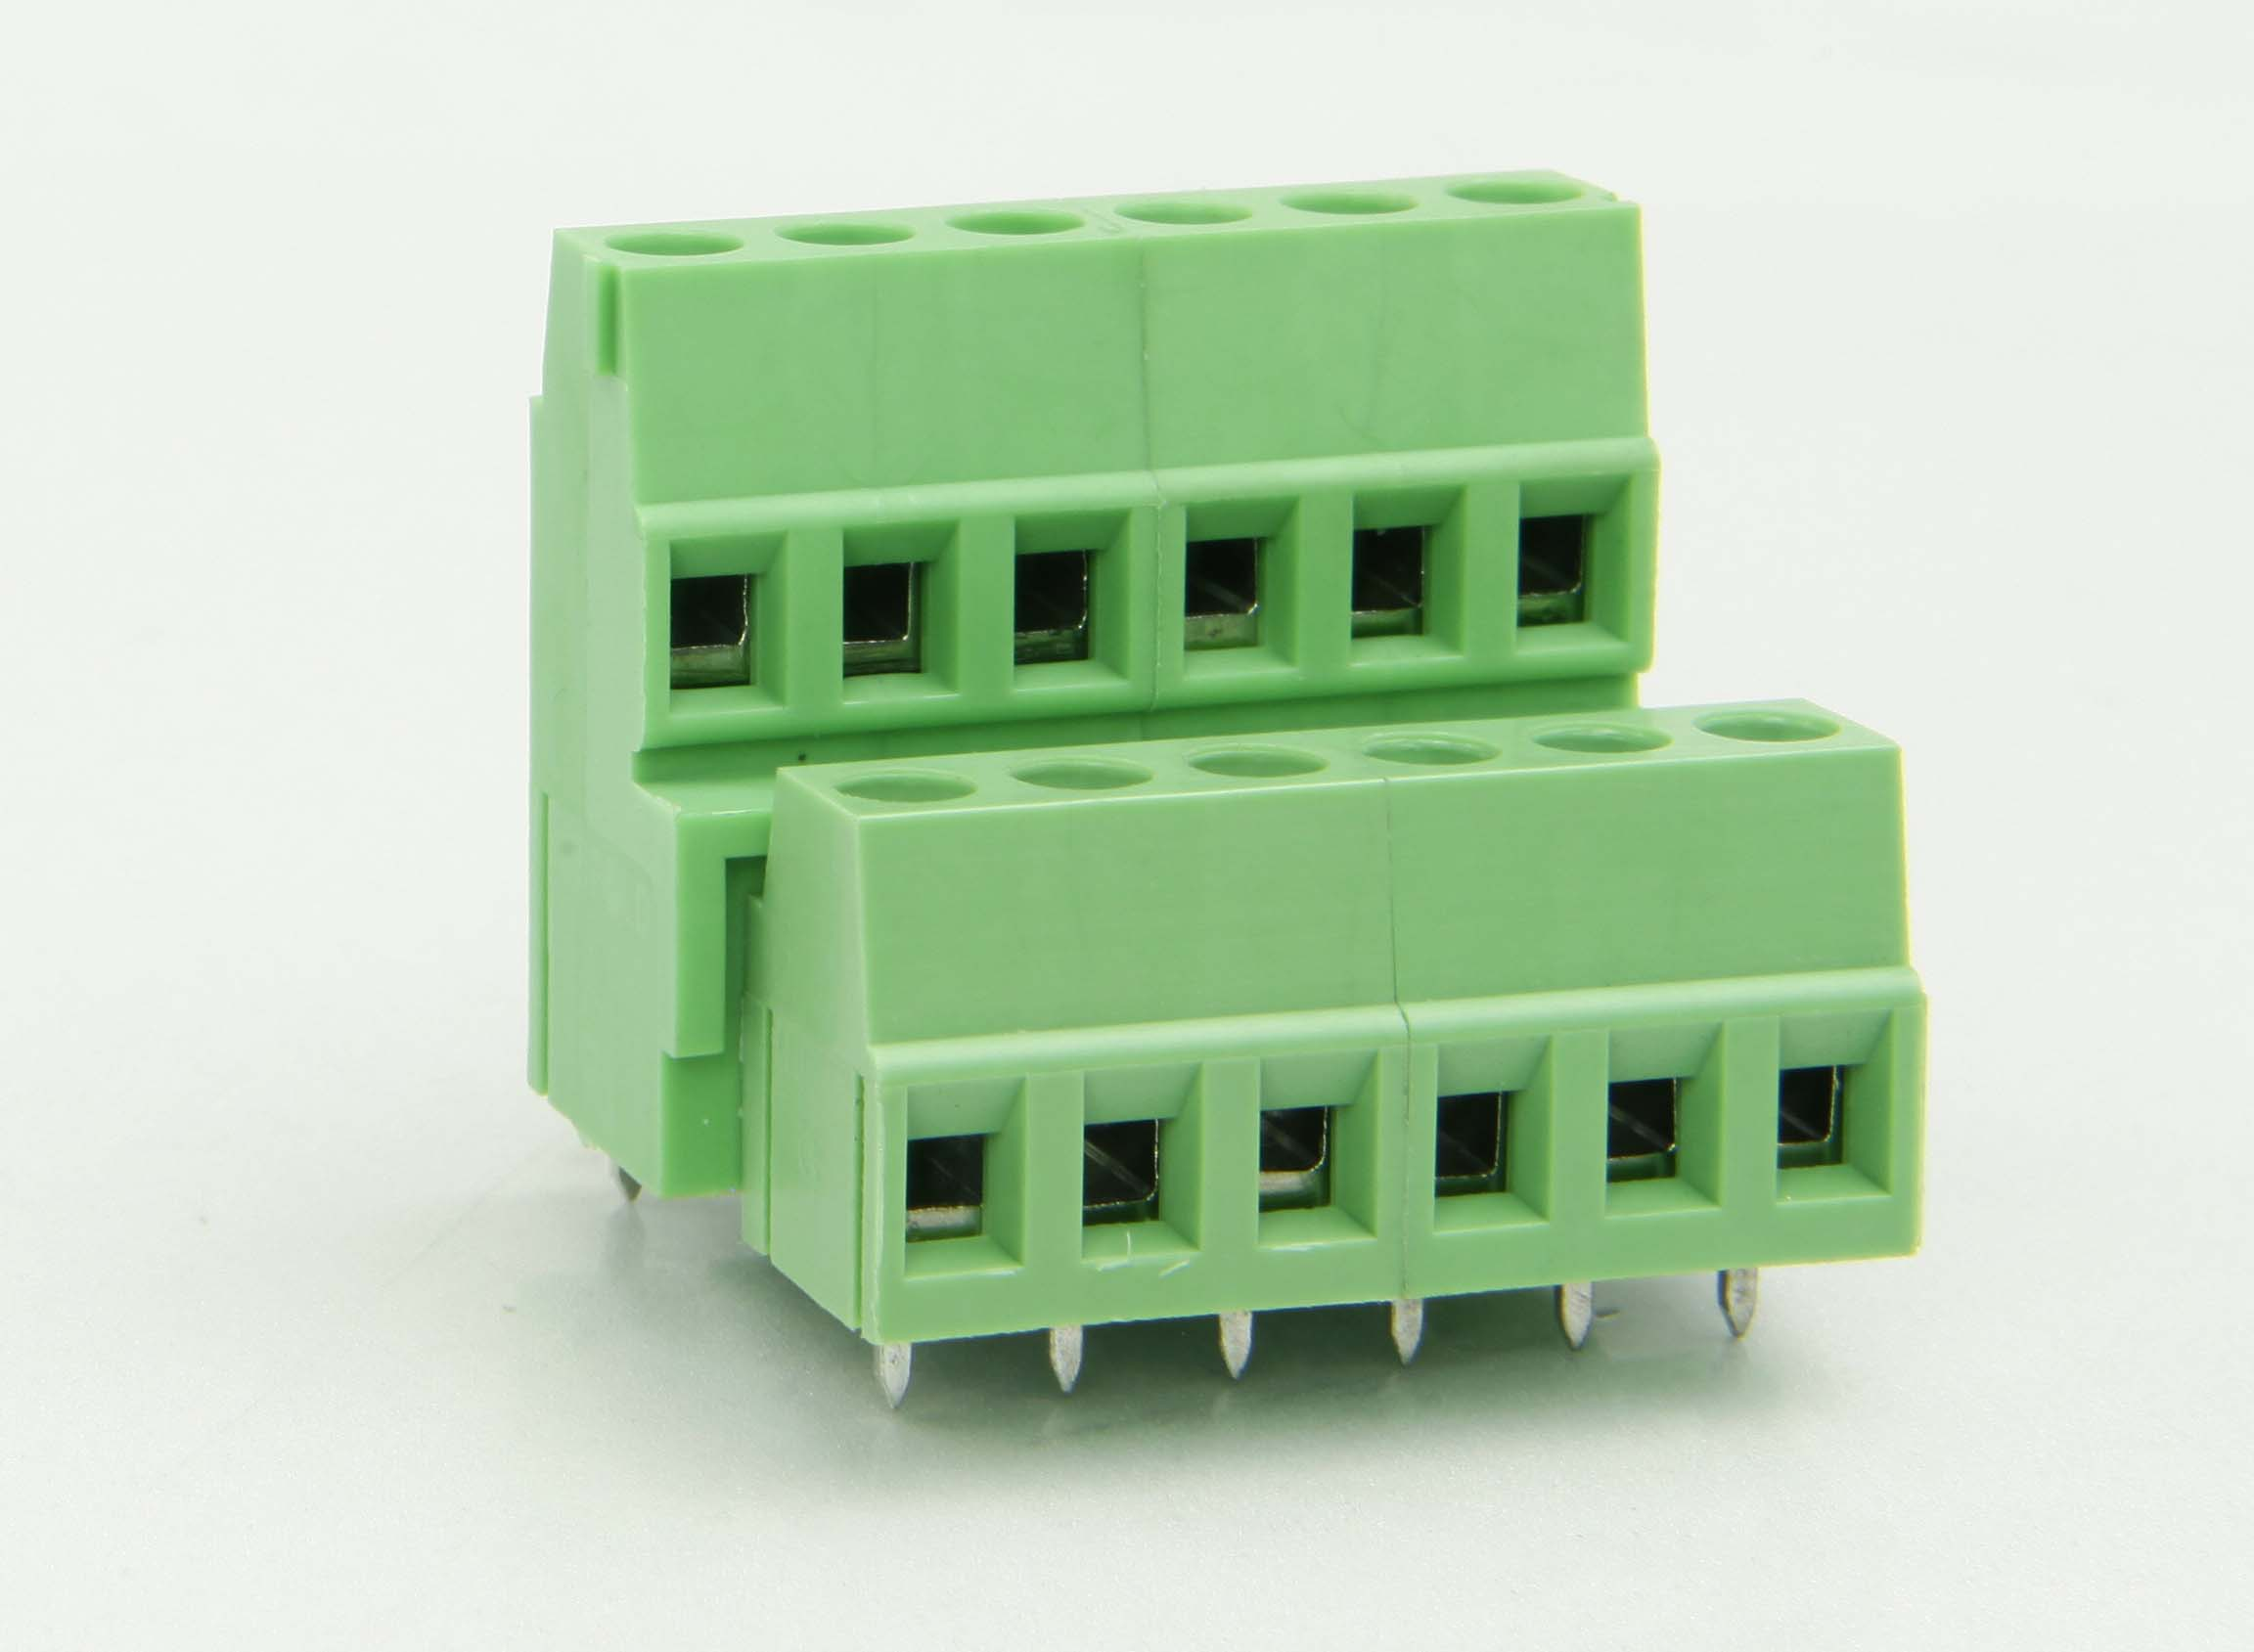 LP500A-5.08 Mga Coaxial Cable Connectors